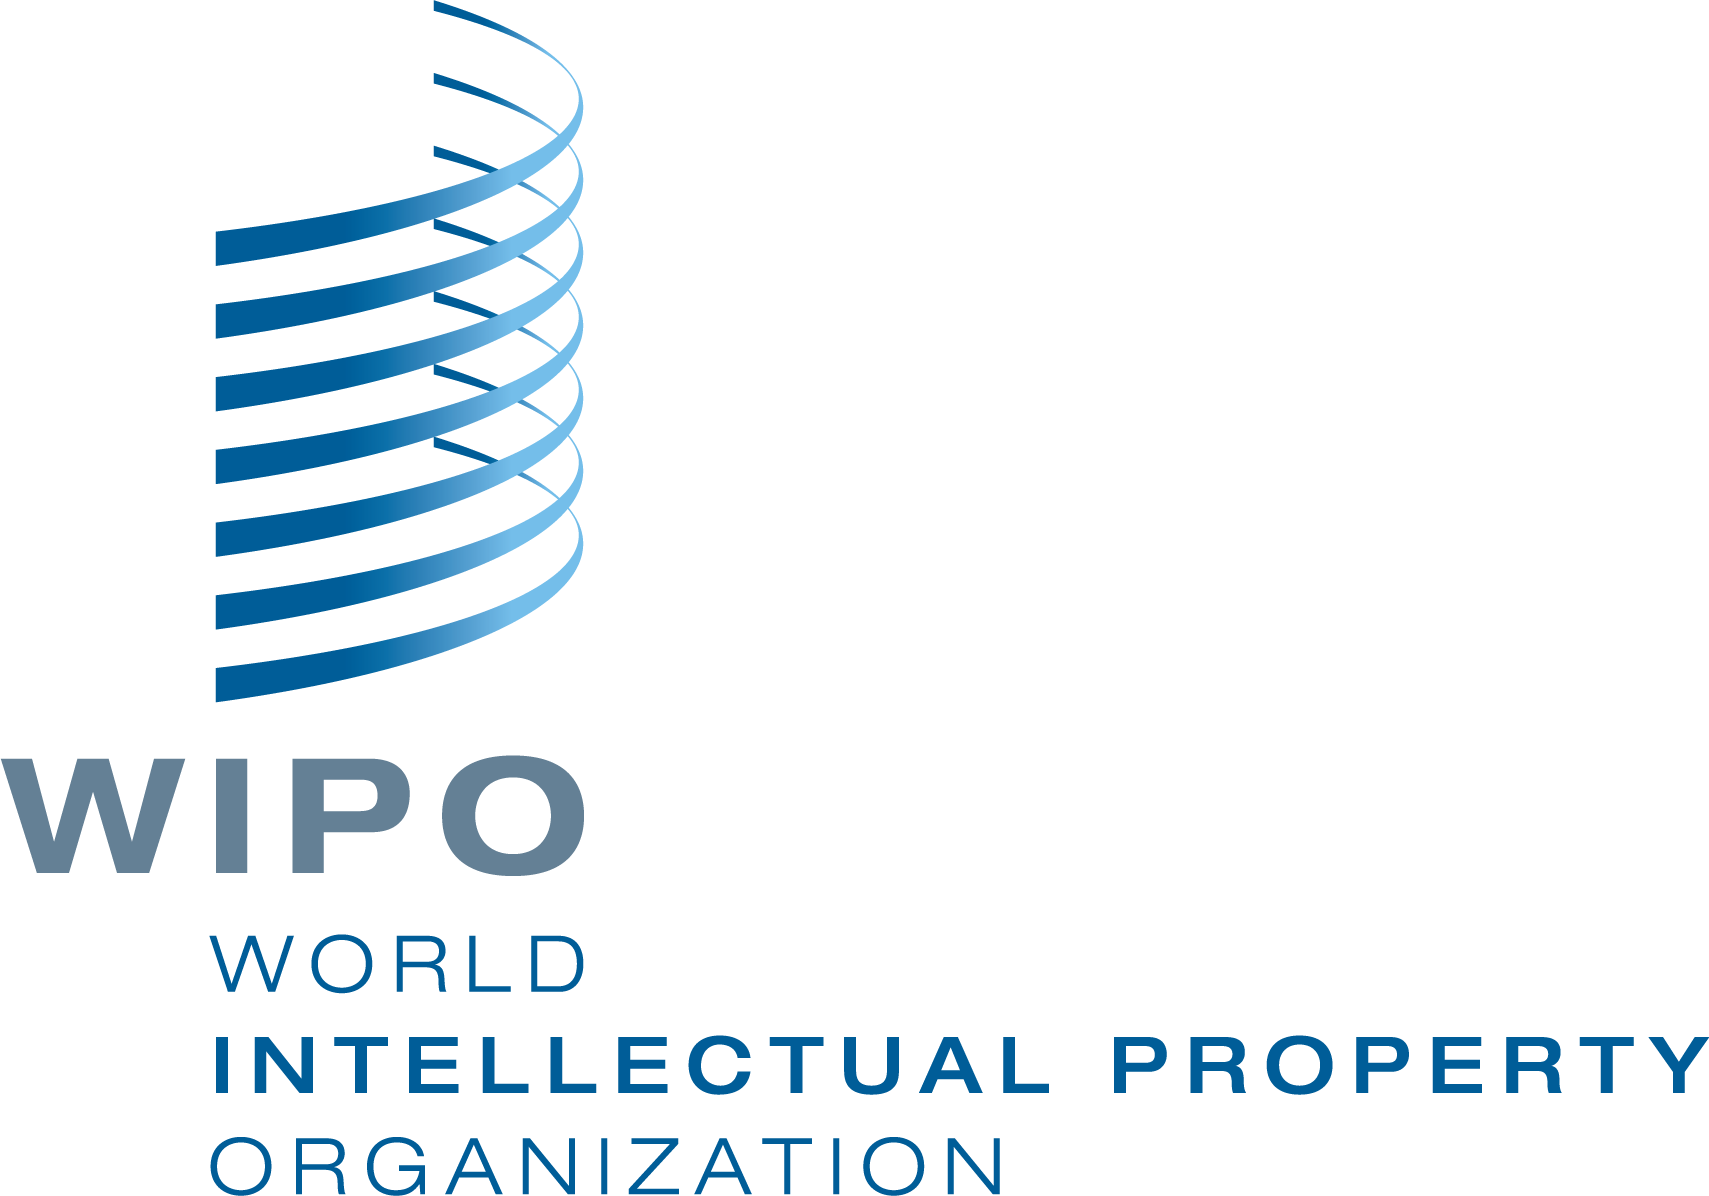 WIPO Director General nomination